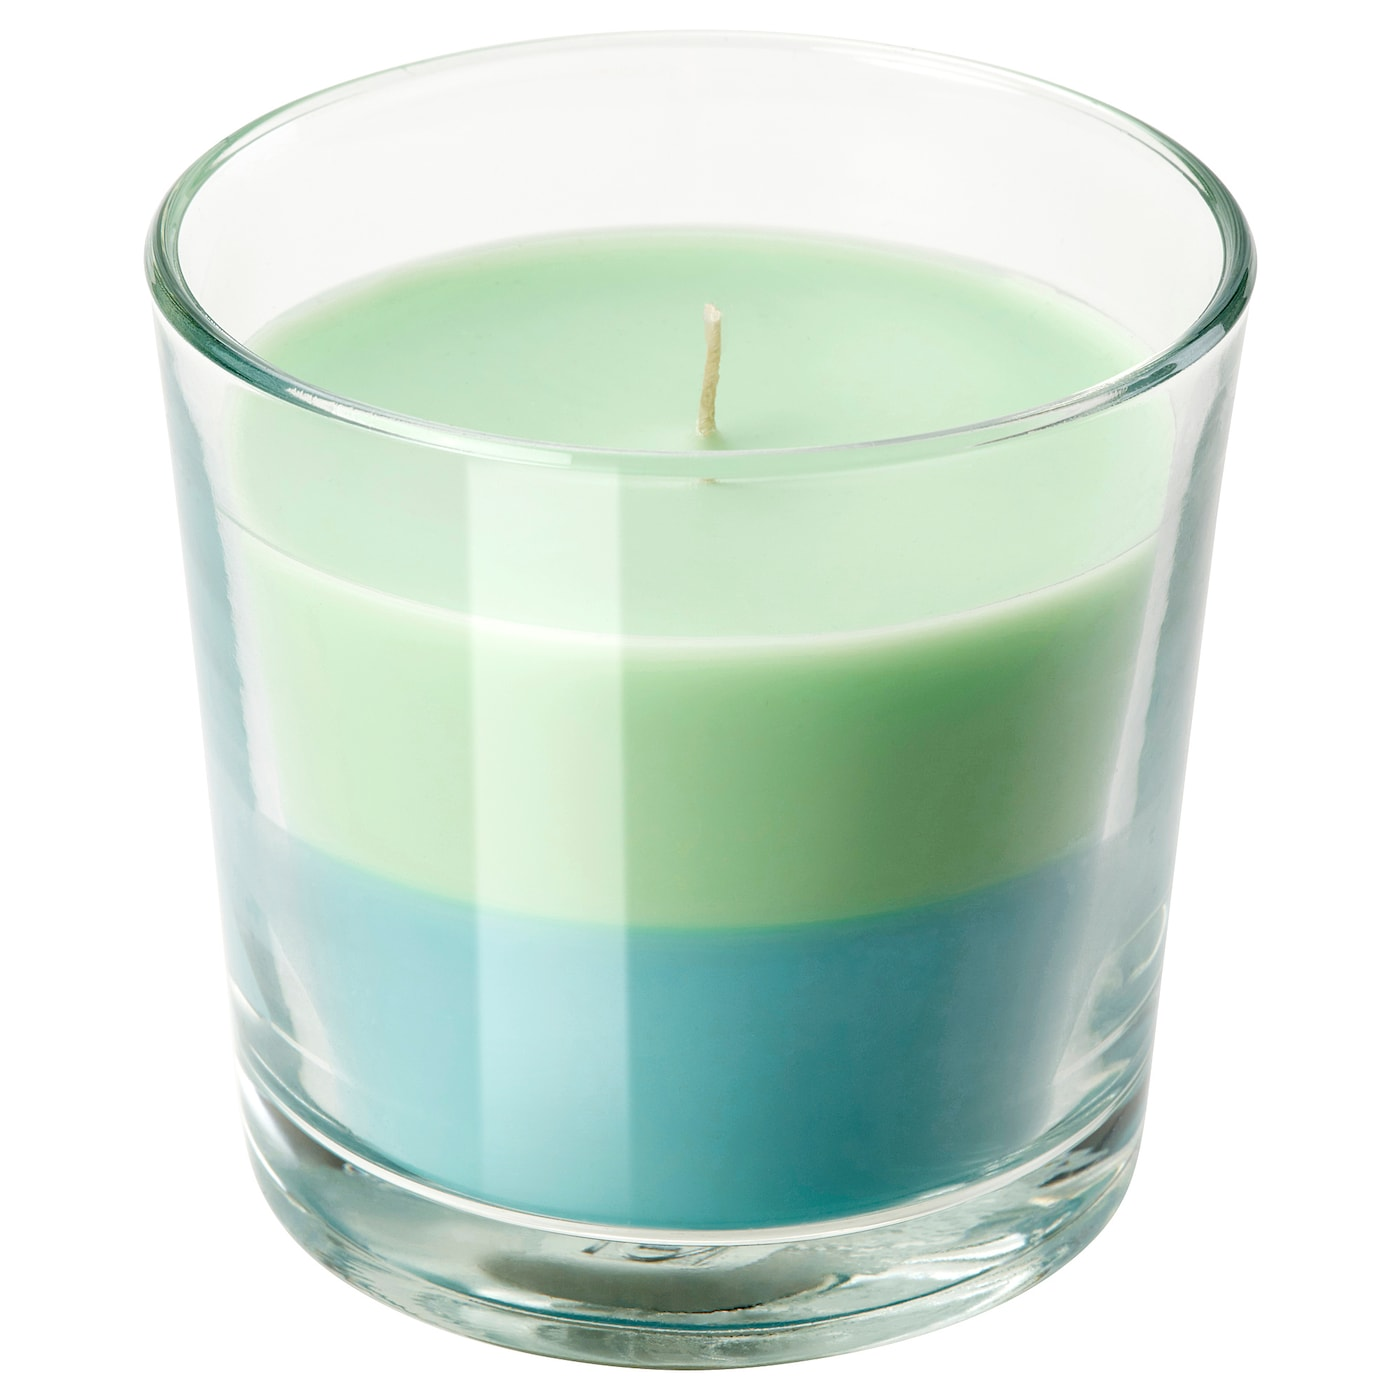 IKEA SOMMAR 2018 scented candle in glass A scent of lime with hints of refreshing mint.